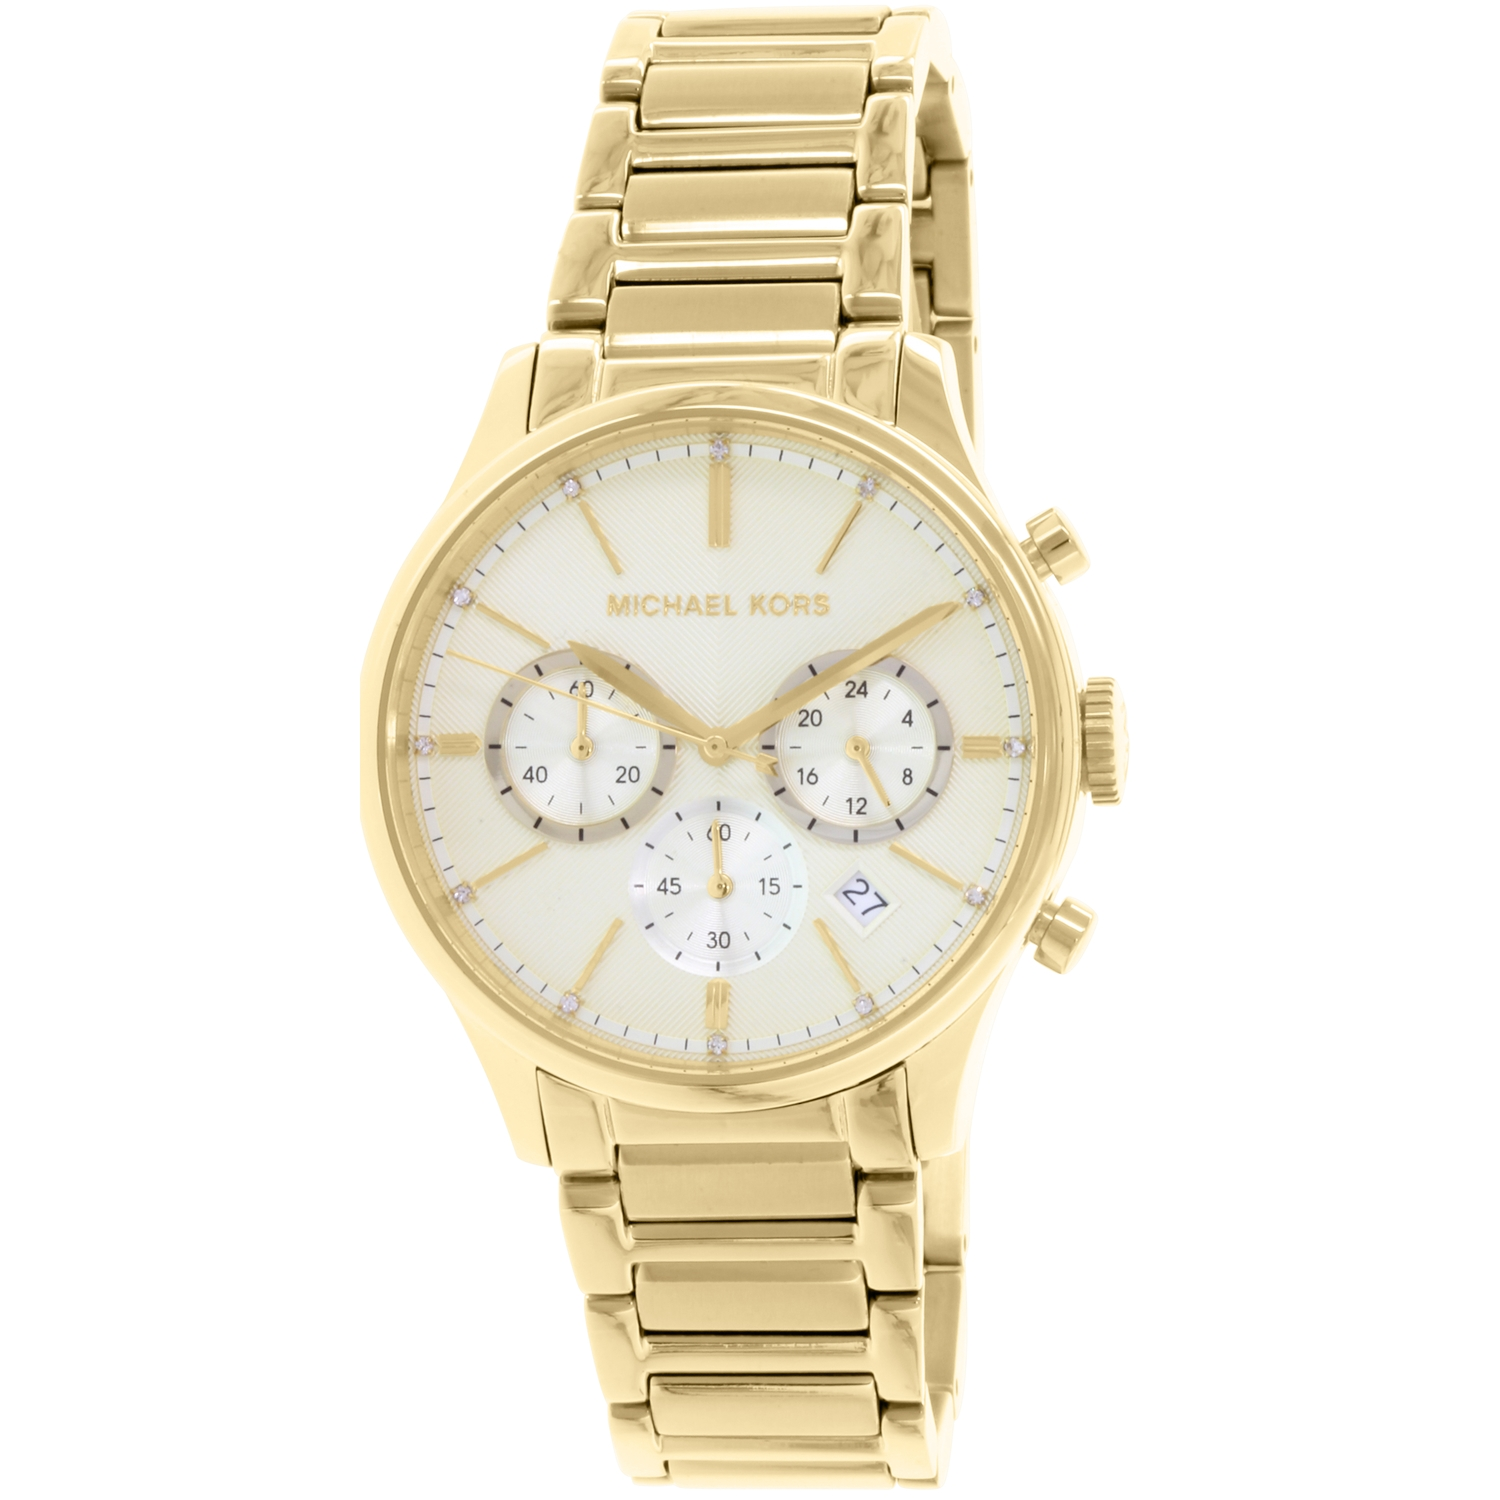 Michael Kors Women's Bailey MK5986 Gold Stainless-Steel Quartz Fashion Watch